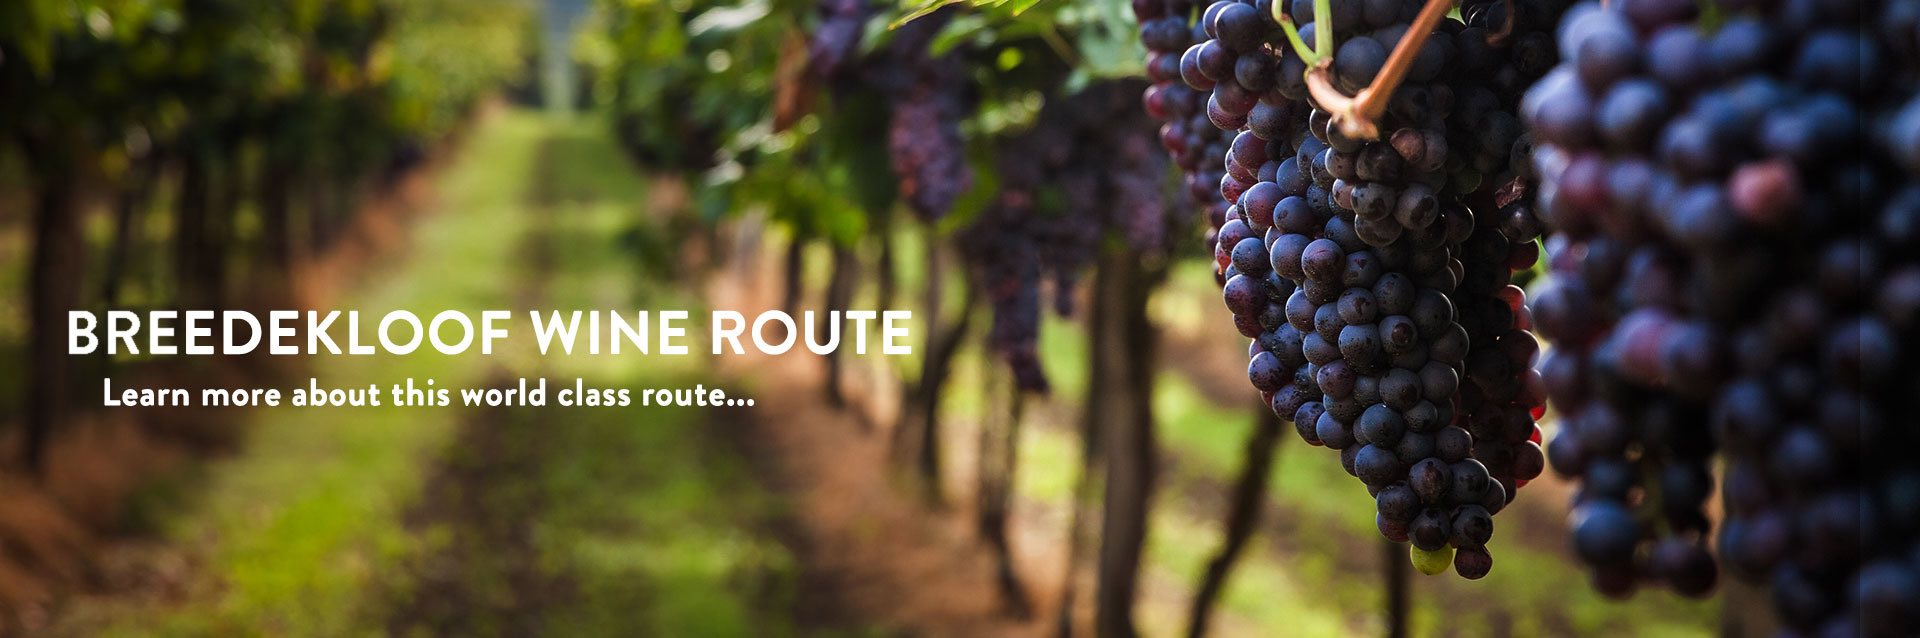 Bredekloof wine route